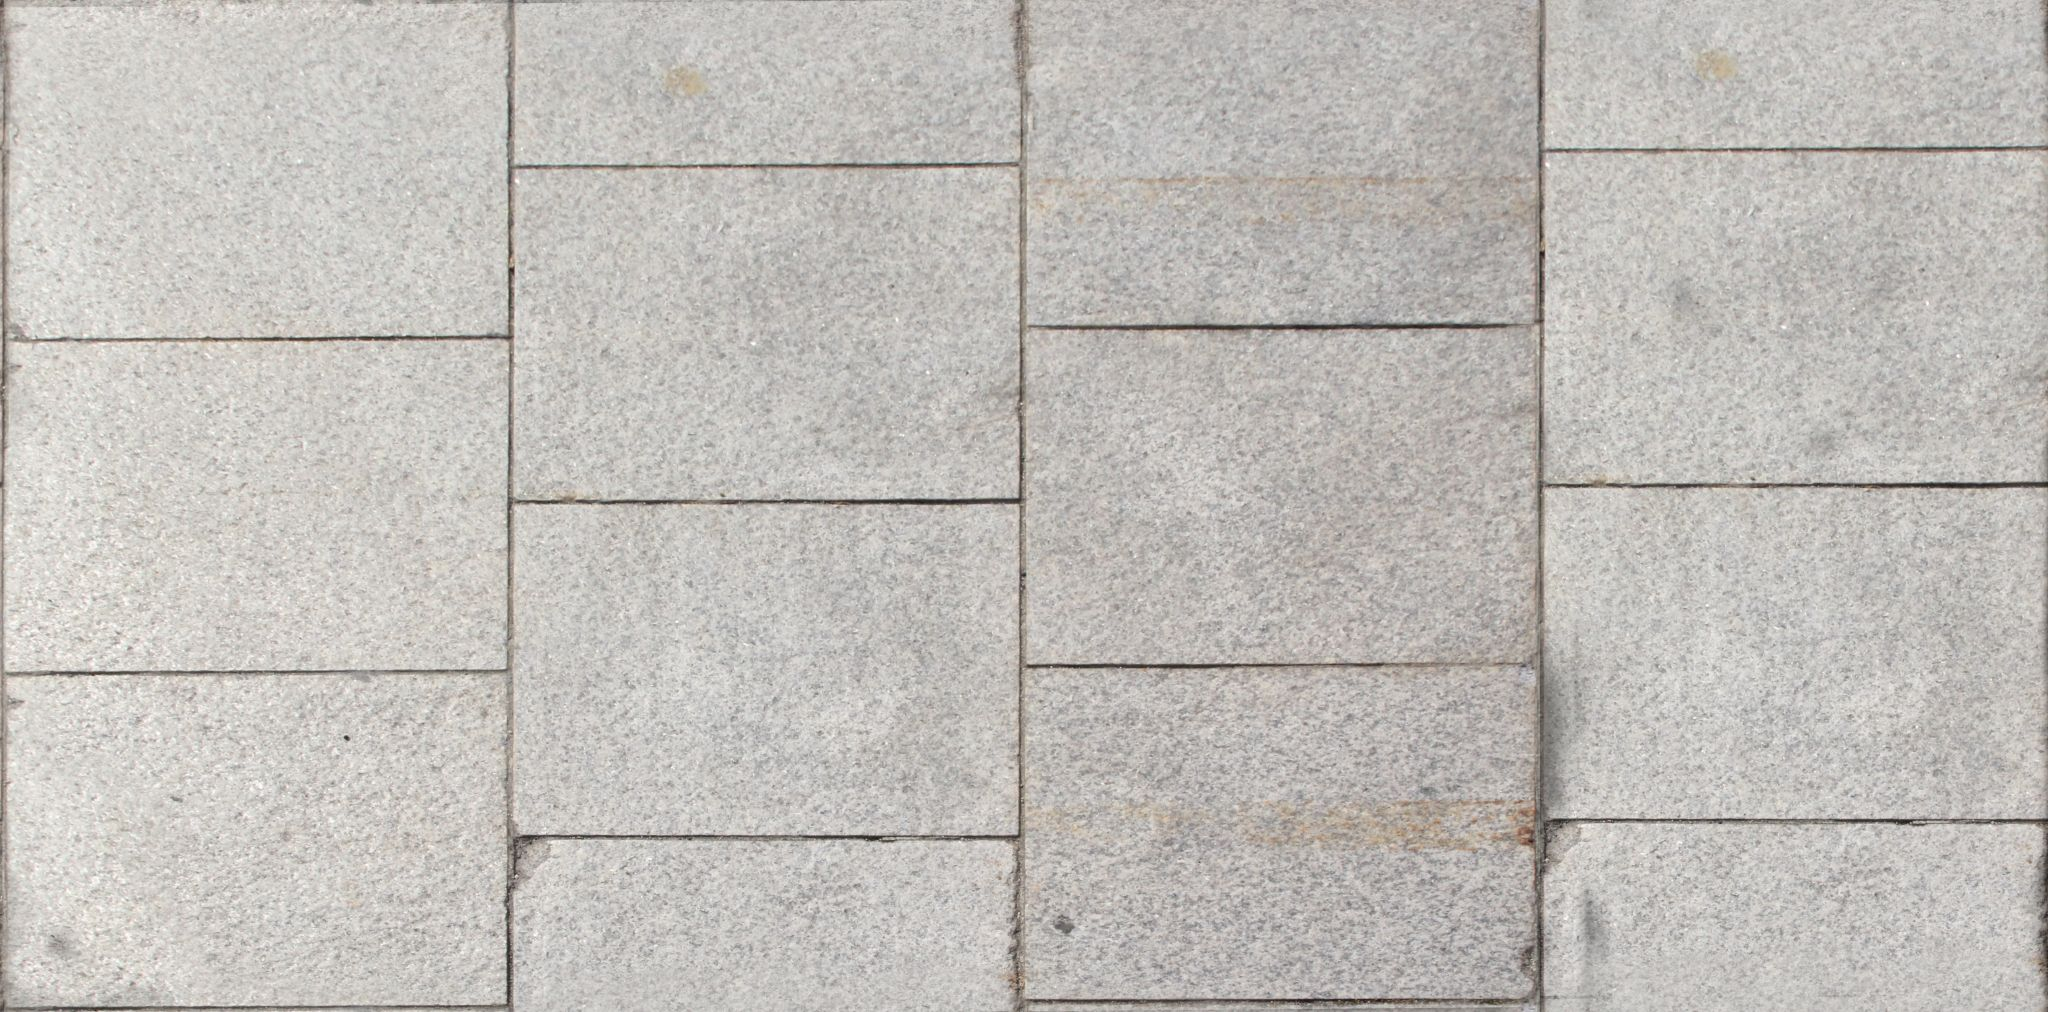 Paving White Slabs Seamless Texture With Normalmap